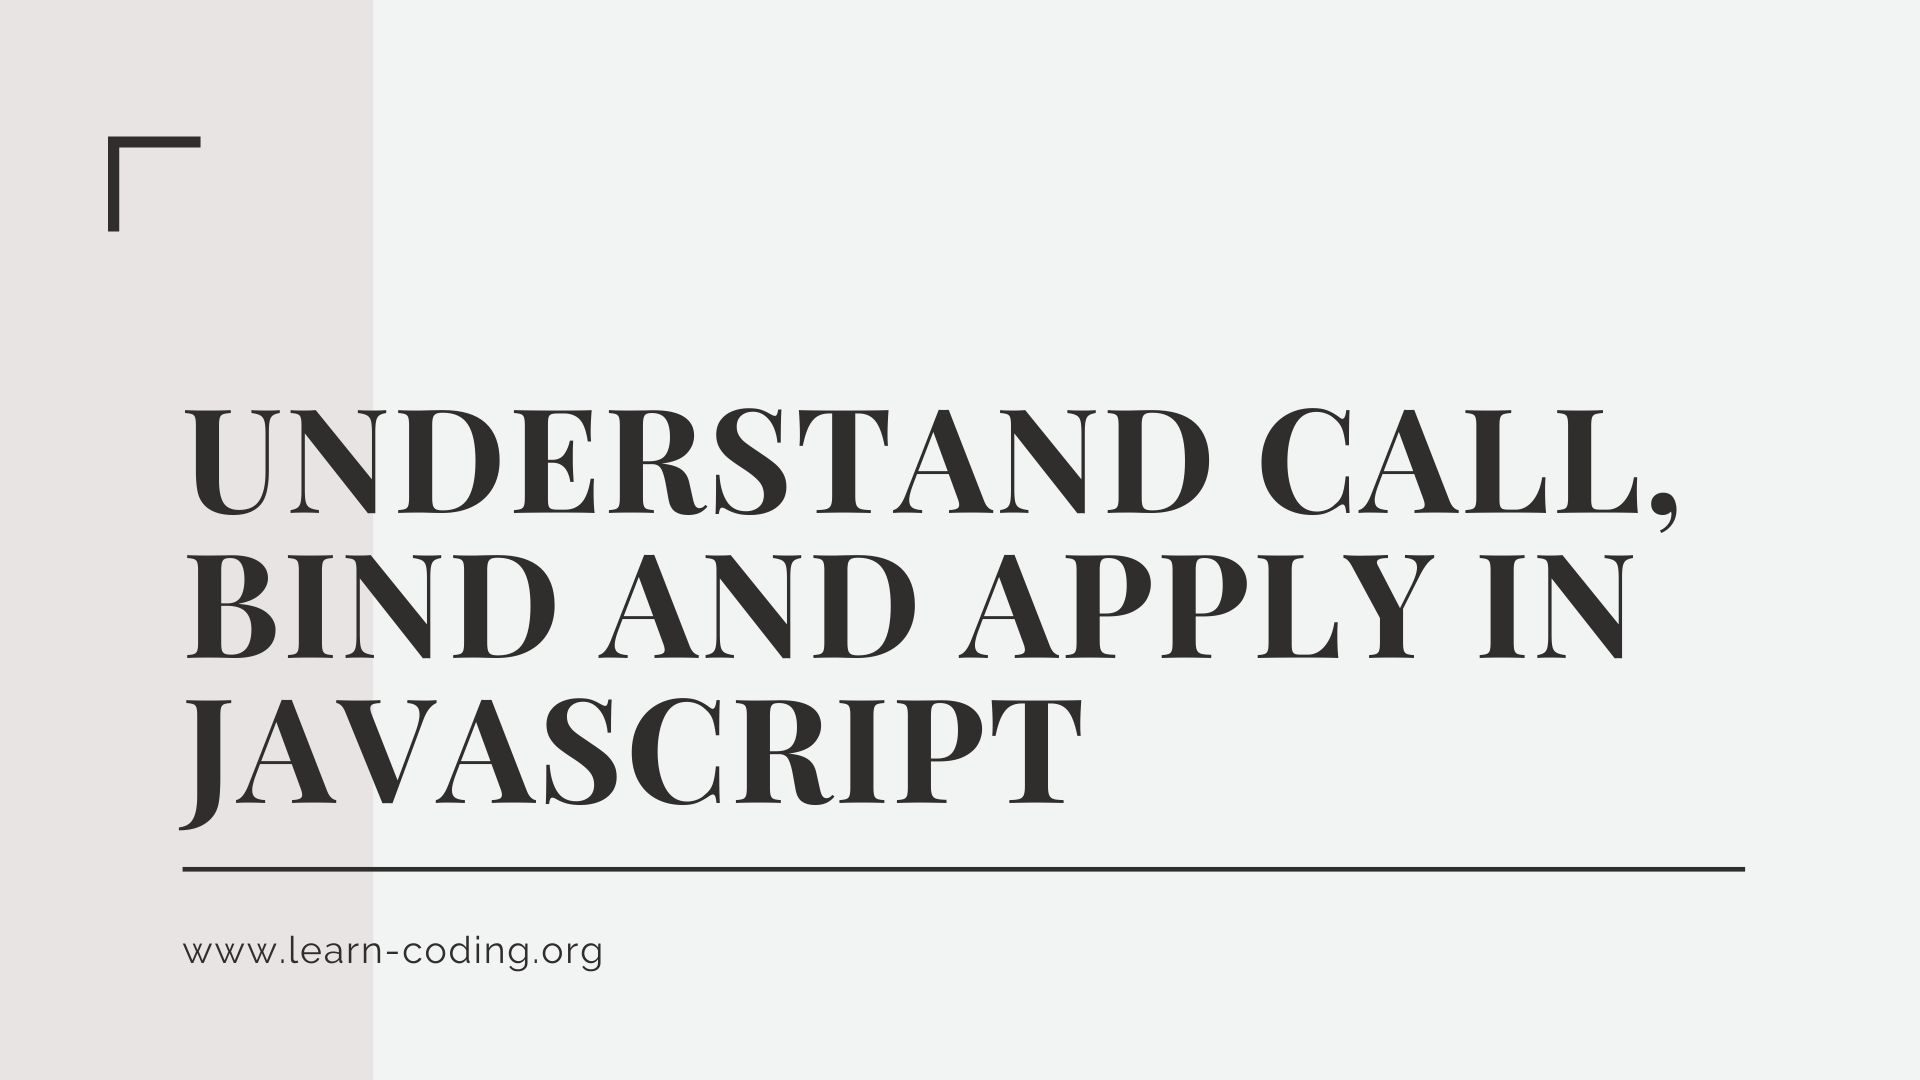 Understand Call, Bind and Apply in JavaScript